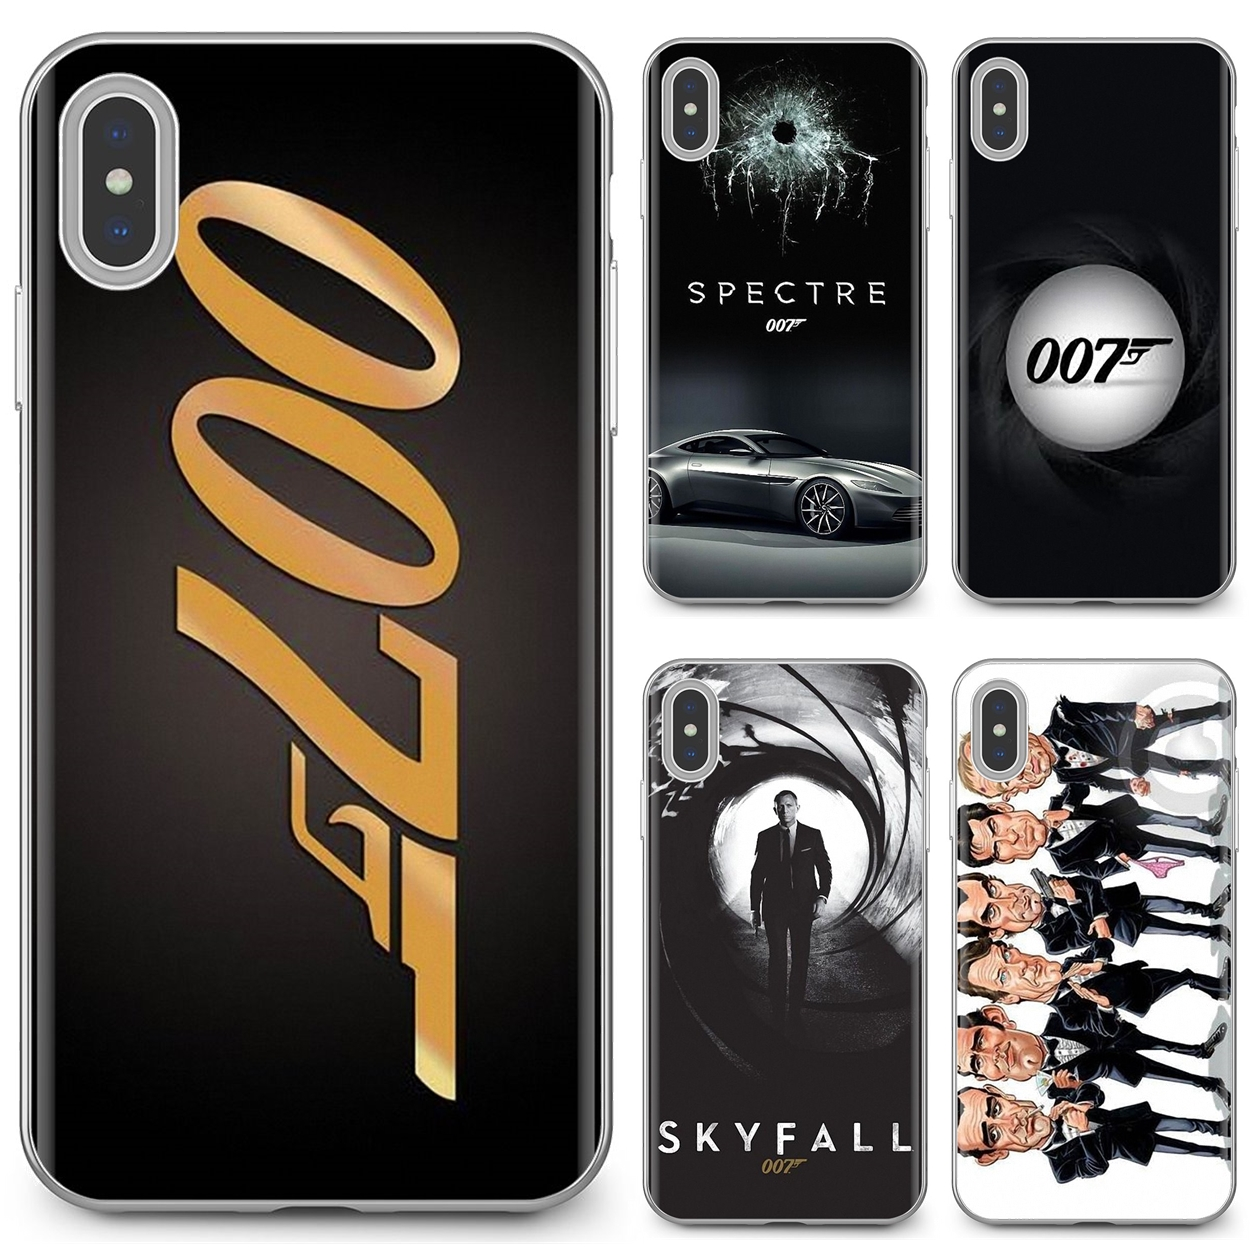 Мягкий чехол для iPhone 11 Pro 4 4S 5 5S SE 5C 6 6S 7 8X10 XR XS Plus Max iPod Touch JAMES BOND 007 SPONSORS Skyfall